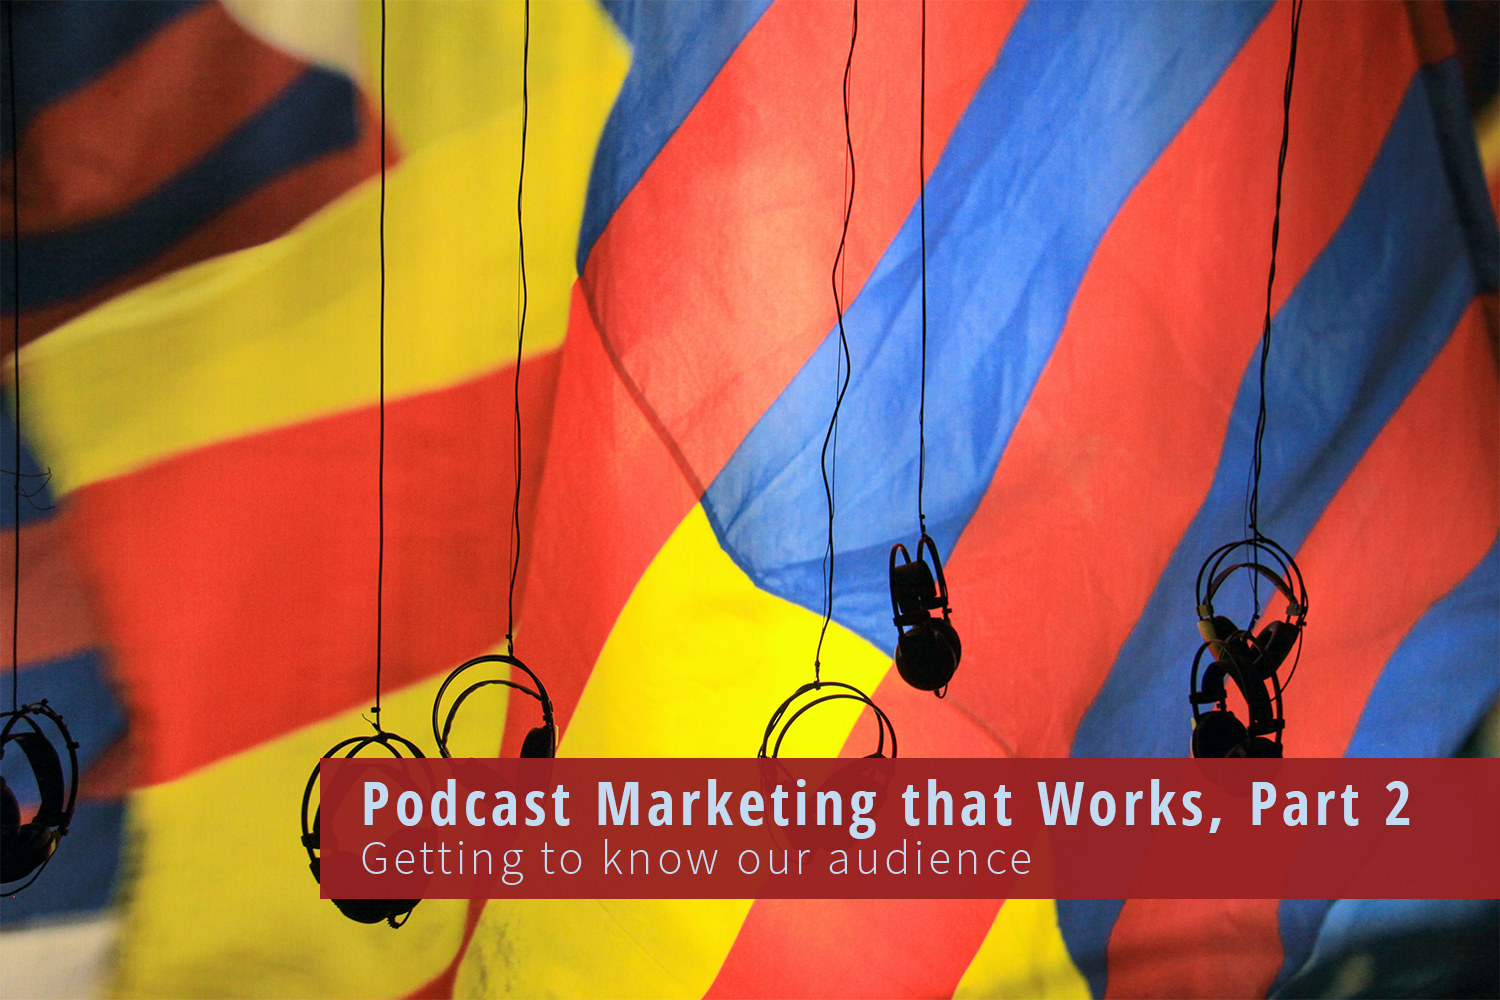 A bright hot air balloon of yellows, reds and blues behind over the ear headphones that hang from above.